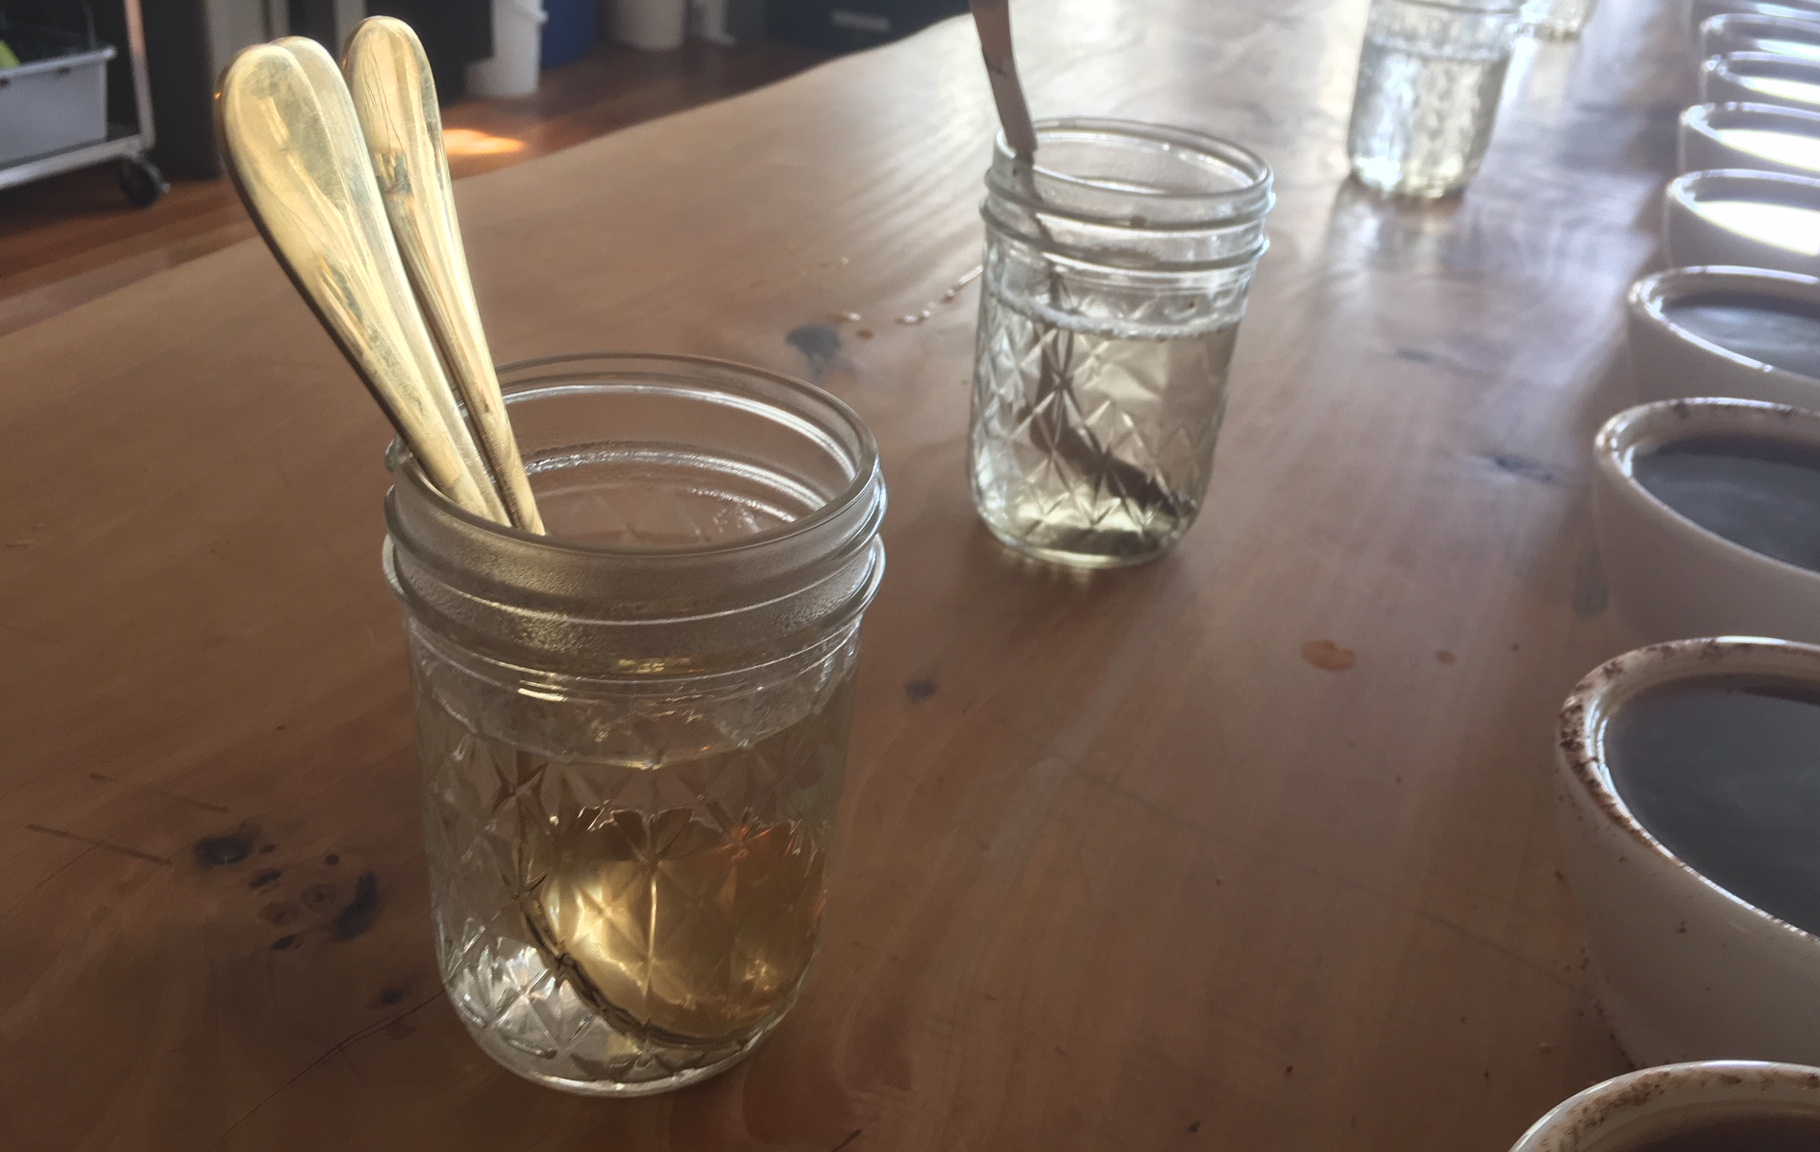 Golden cupping spoons in a rinse cup on a wooden table.